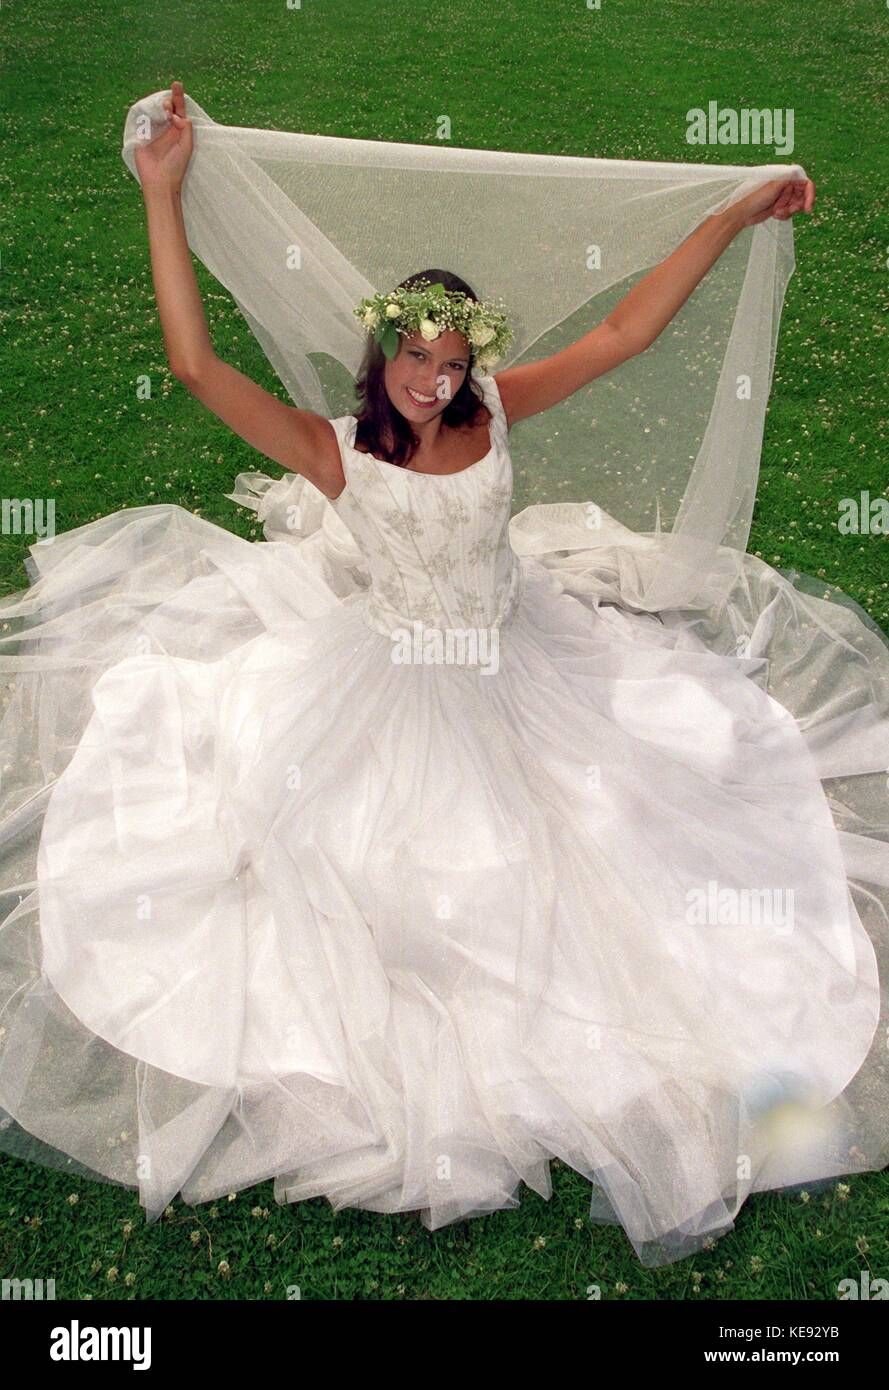 A classic wedding dress in white with several layers and a flower ...